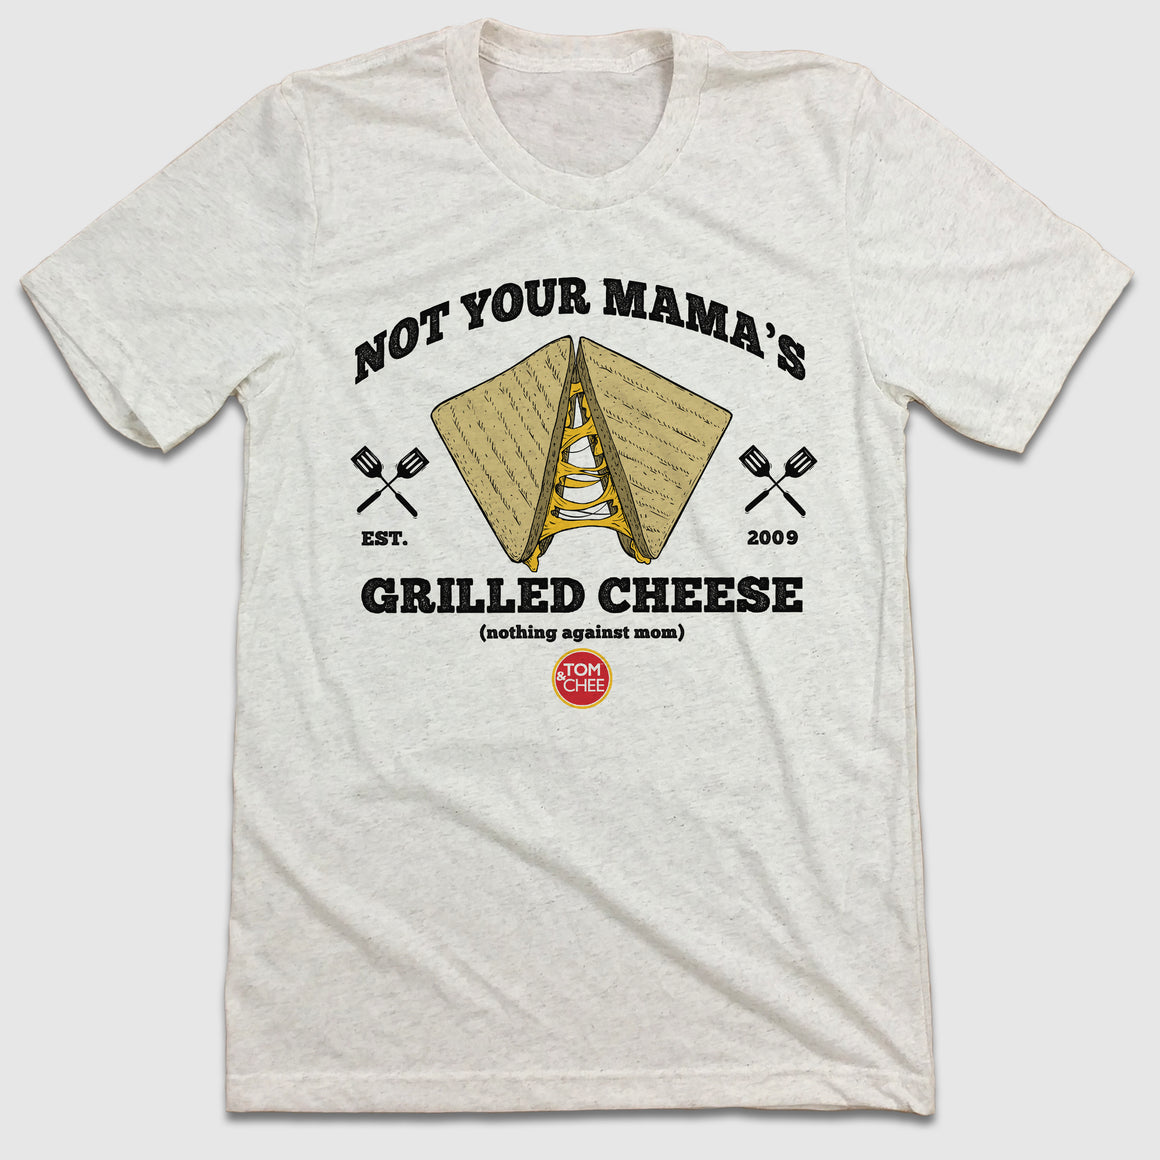 Tom & Chee Not Your Mama's Grilled Cheese - Cincy Shirts